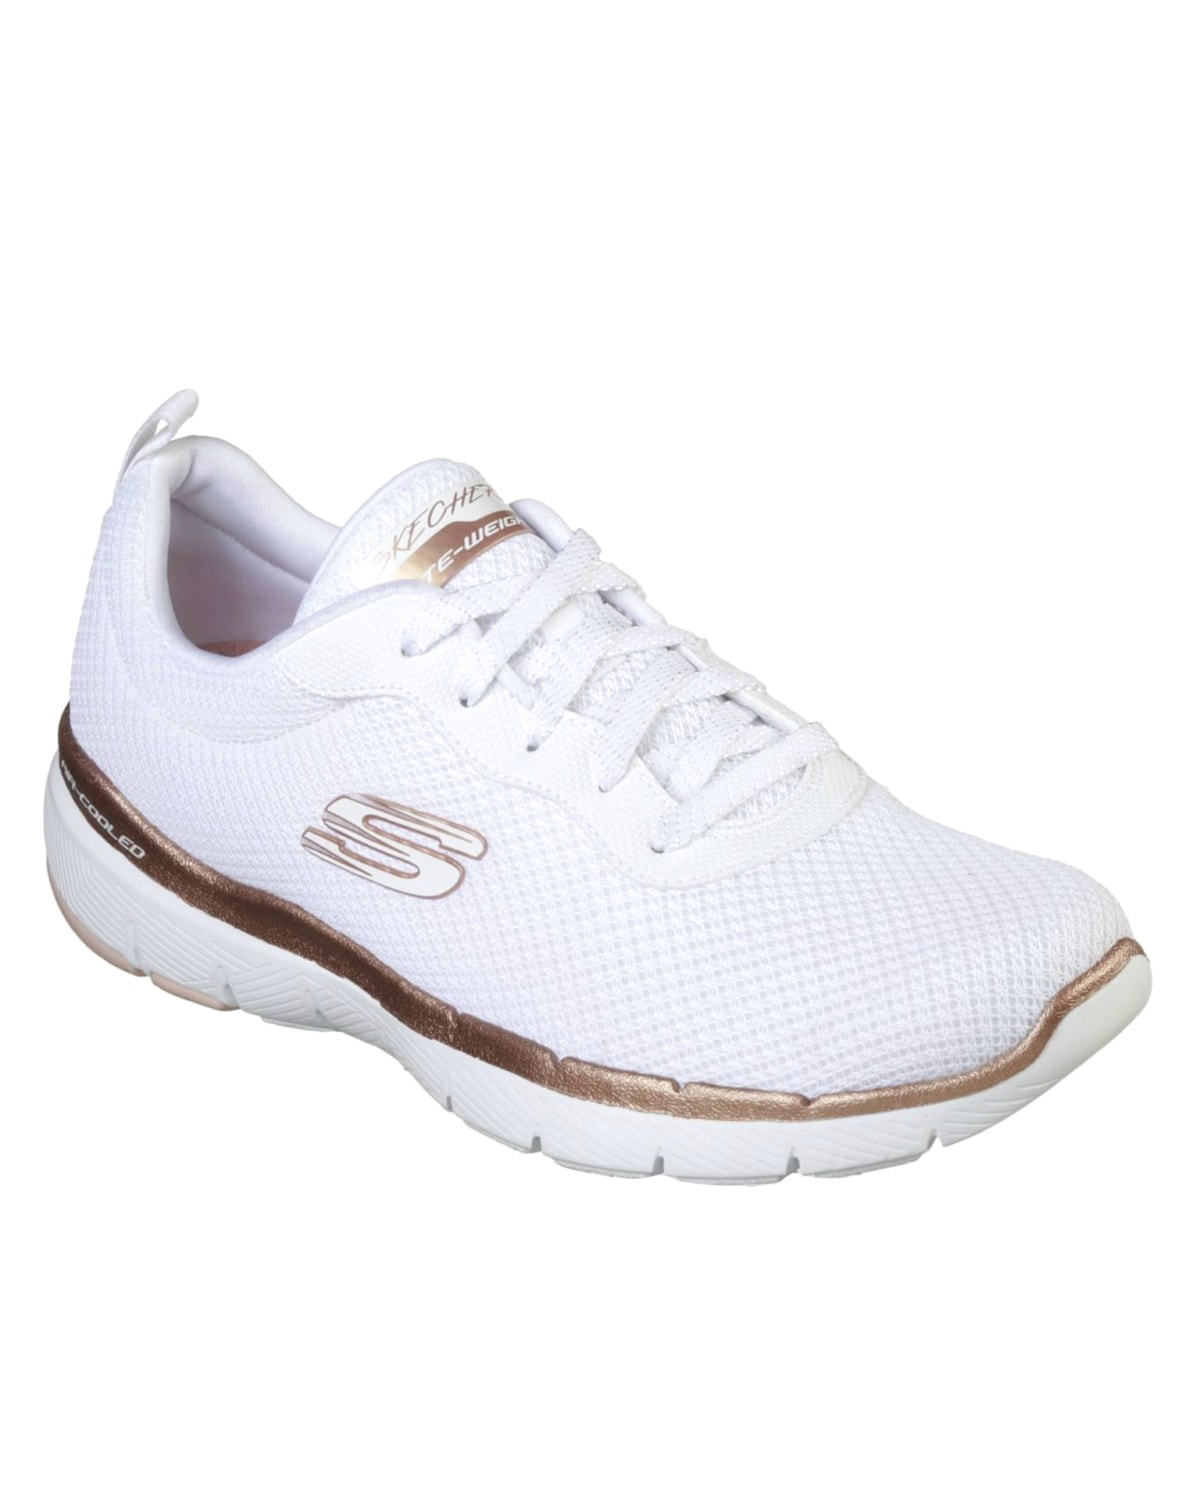 Skechers Womens Flex Appeal 3.0, 13070_WTRG